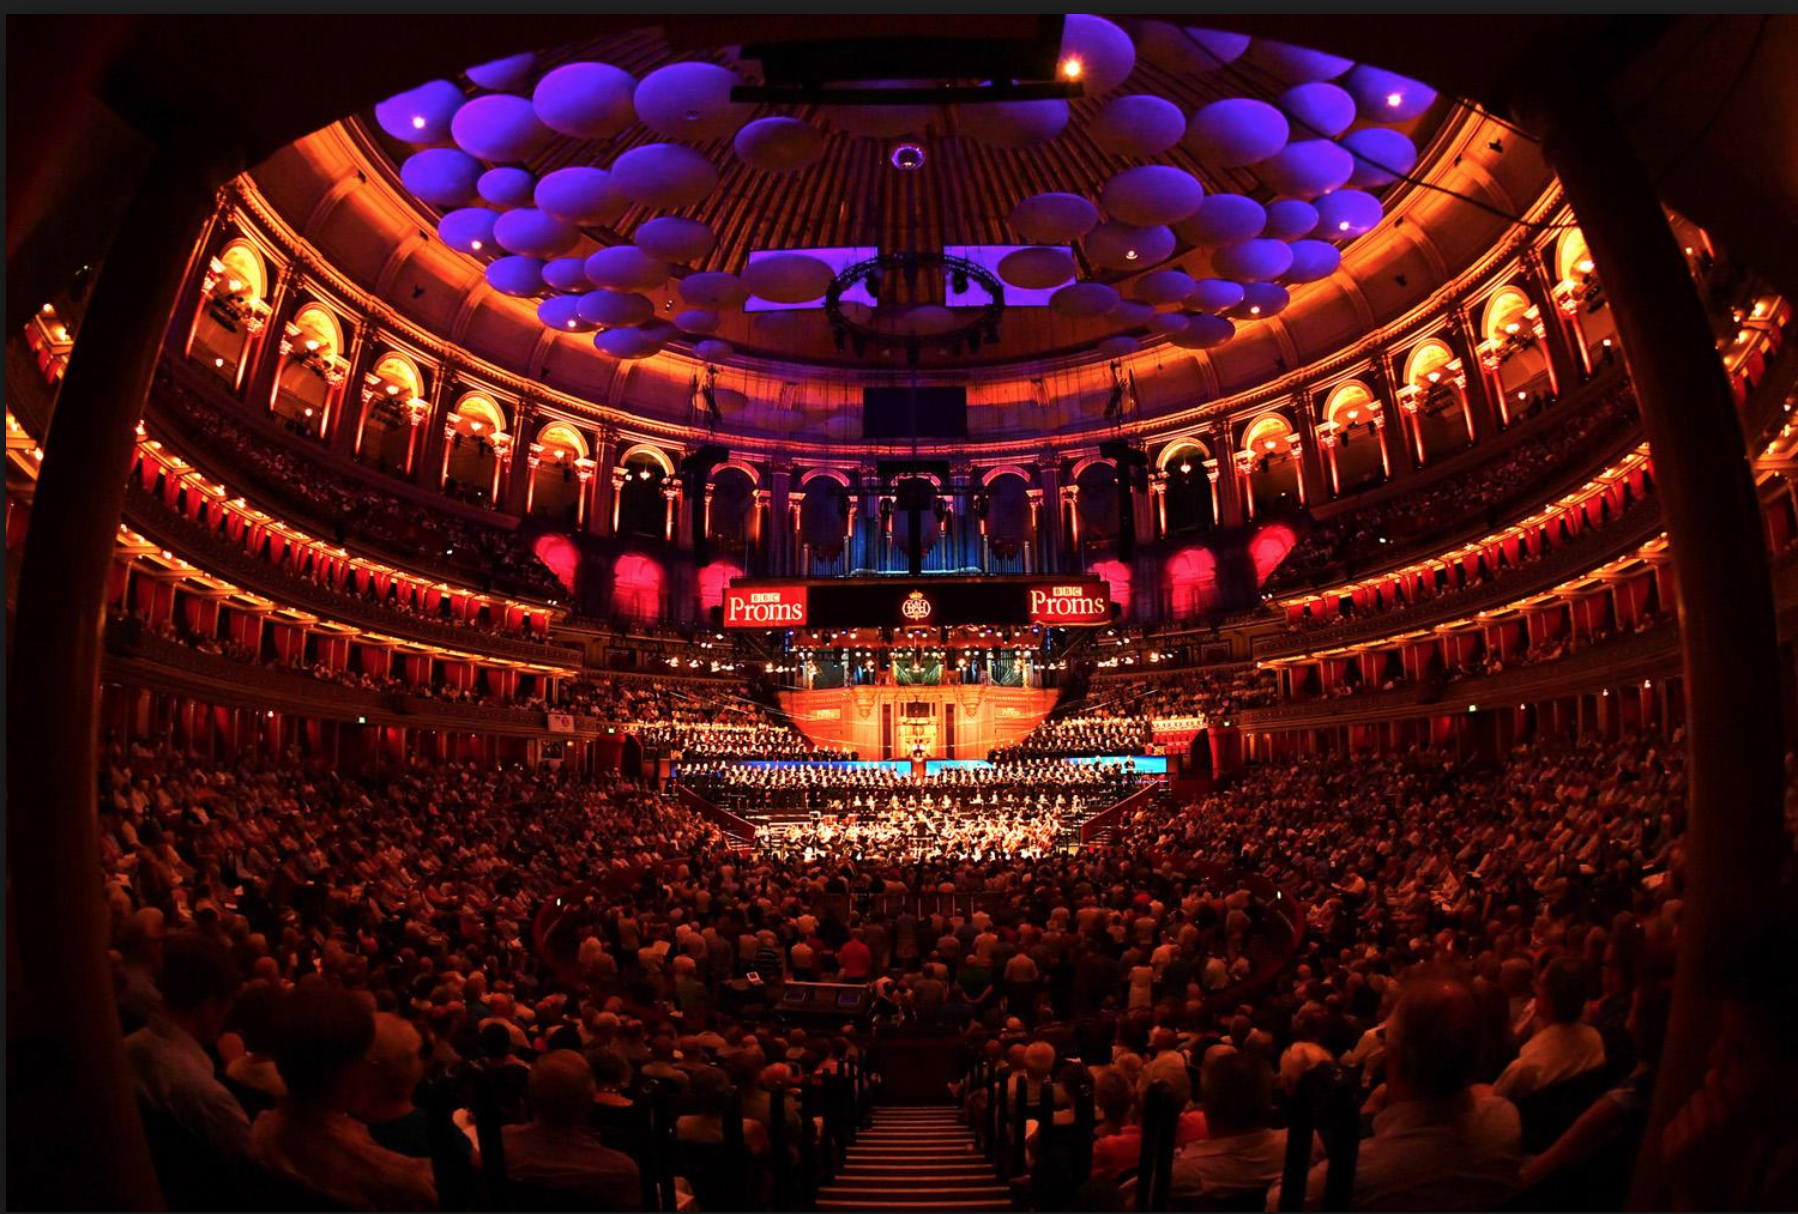 musicAeterna at the Royal Albert Hall, Proms 2018, photo borrowed from the London Evening Standard as reference only